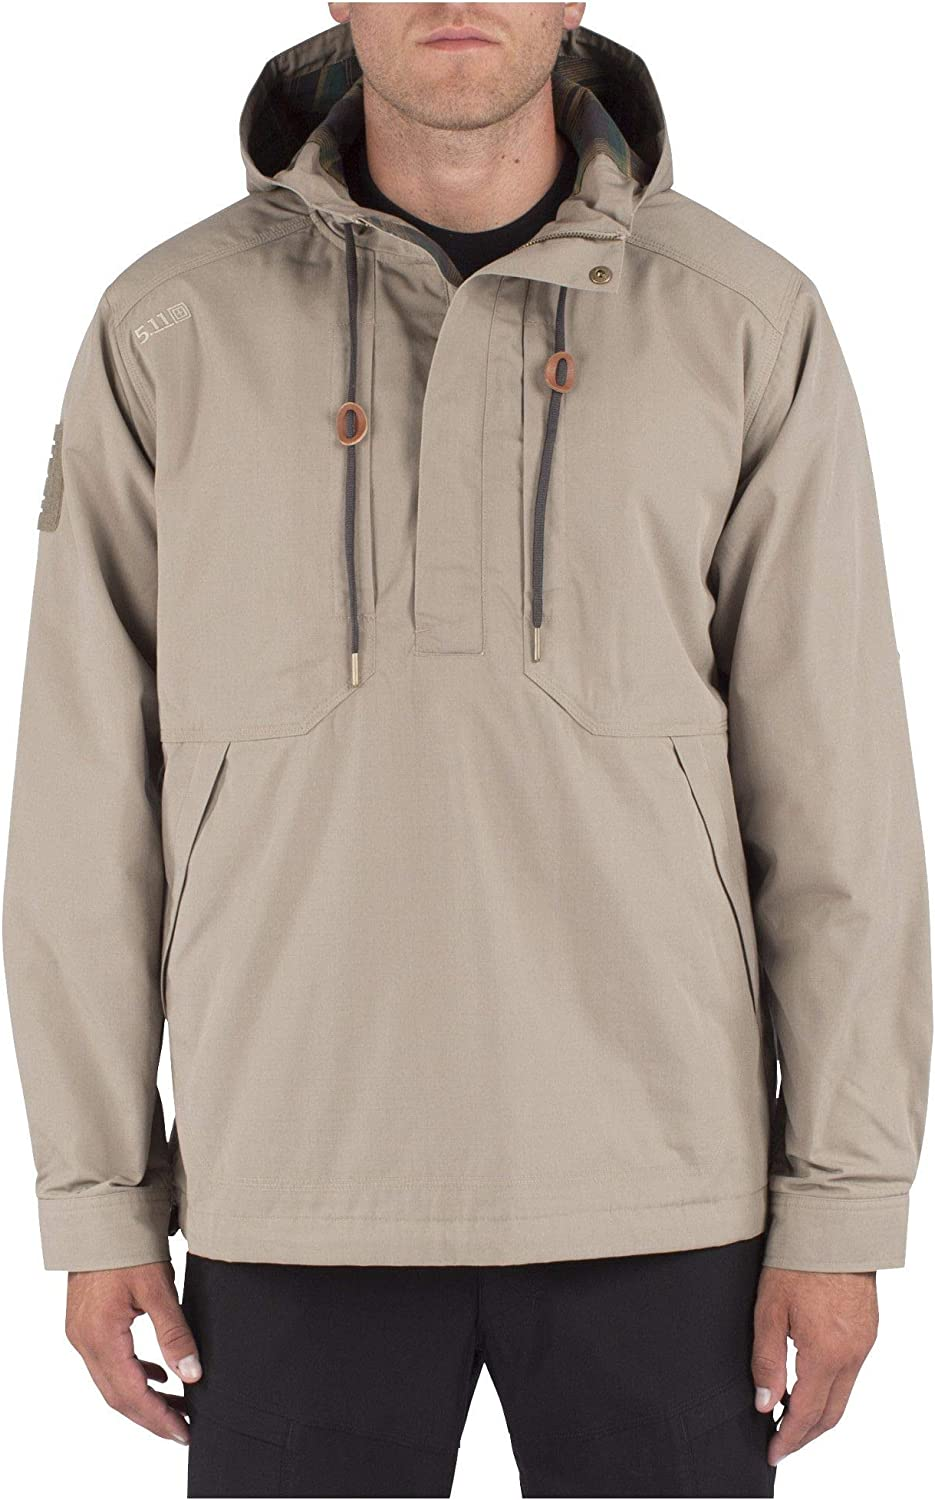 5.11 Tactical Men's Taclite Anorak Jacket, 100% Cotton Twill, Breathable Interior, Style 78012